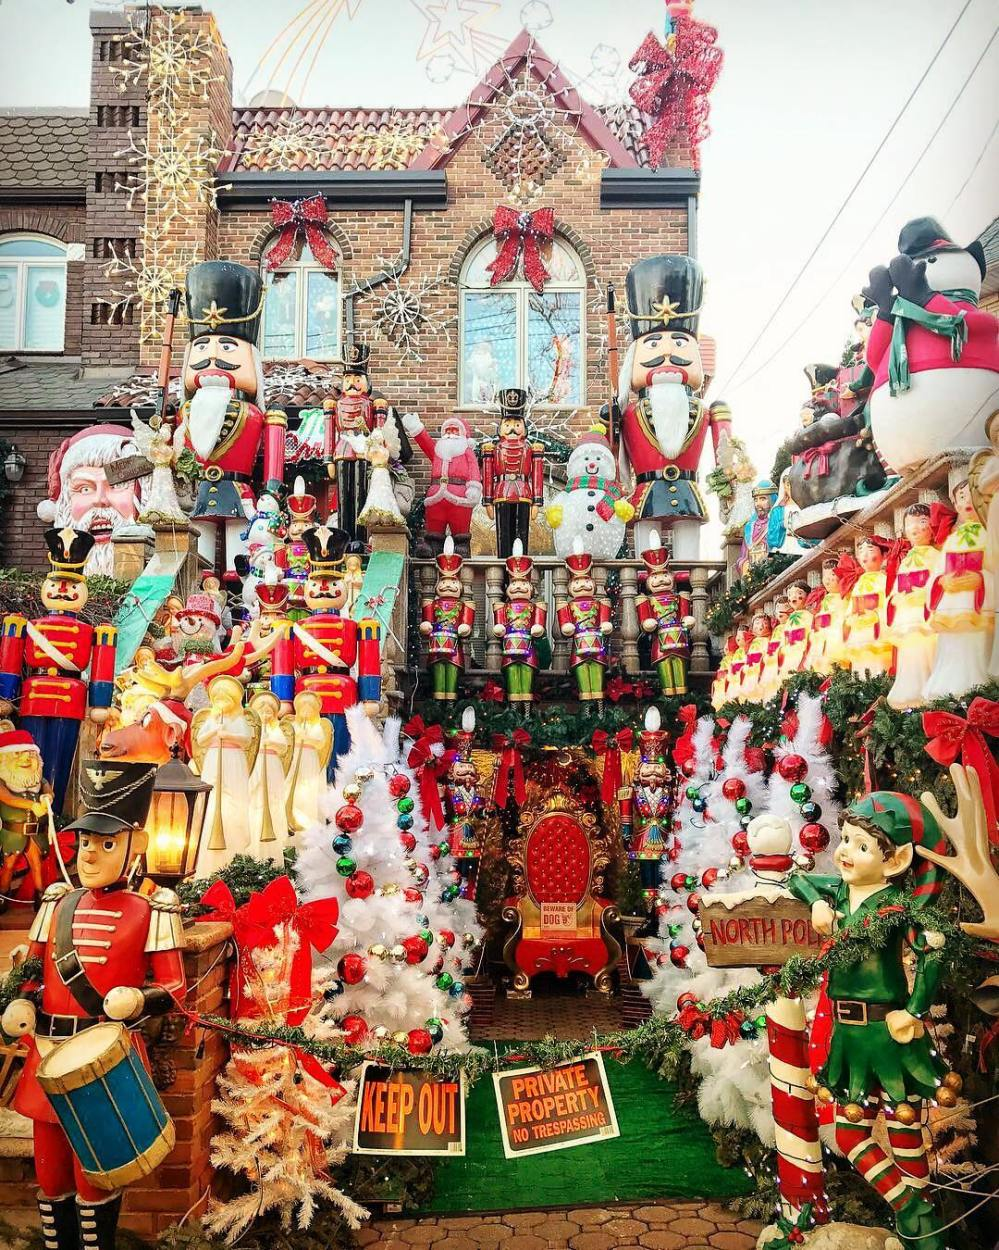 dyker heights brooklyn.jpg